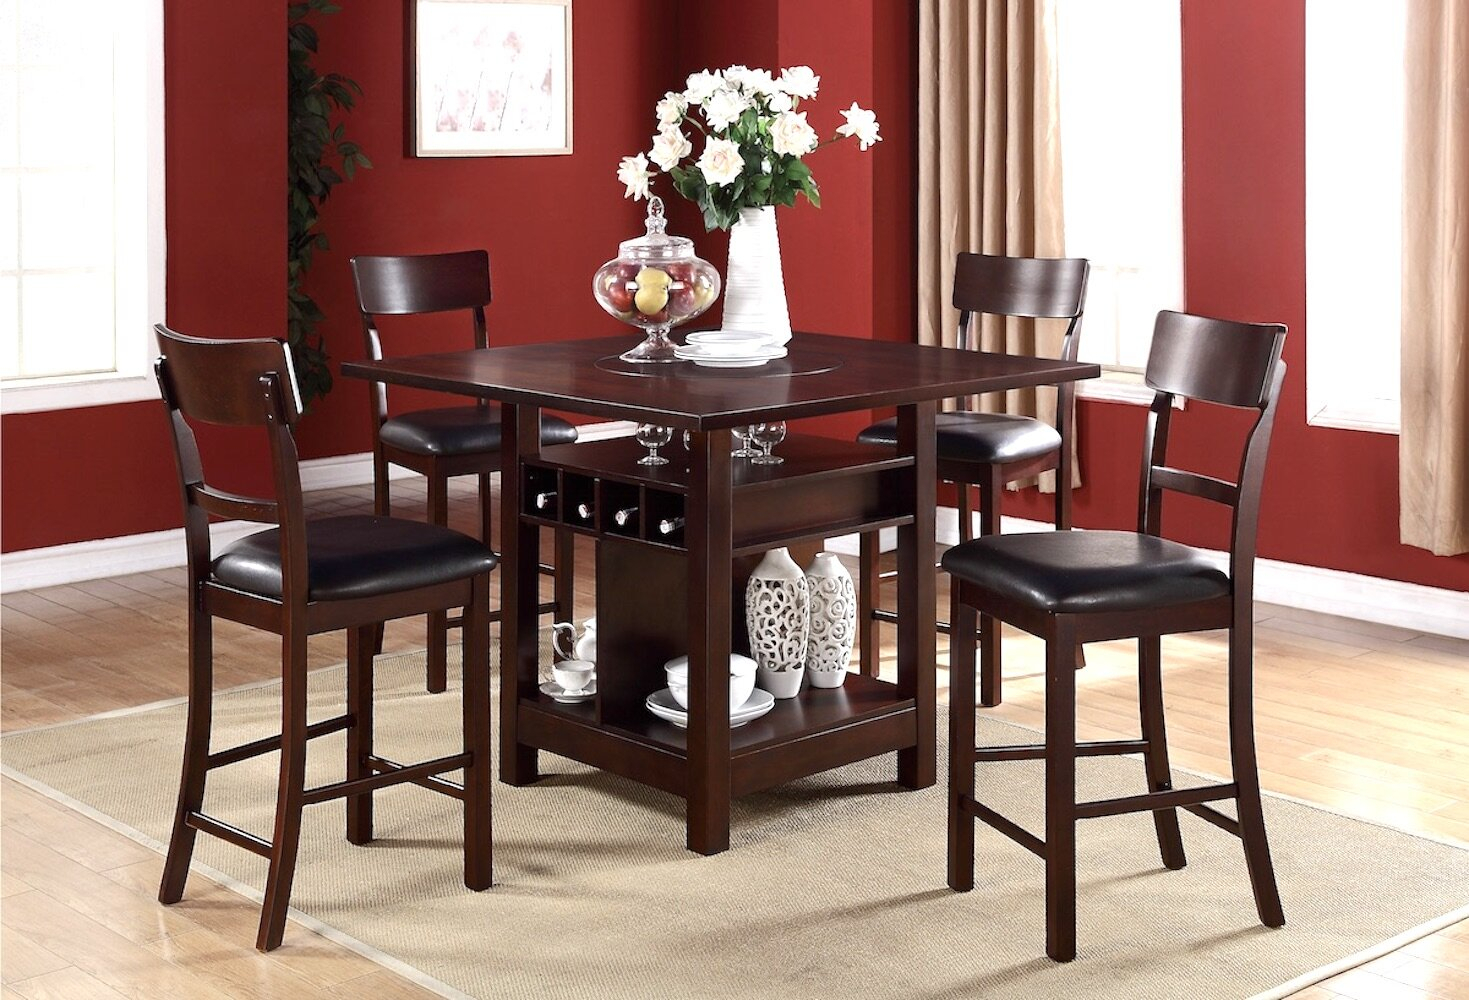 Biggs 5 Piece Counter Height Solid Wood Dining Sets (Set Of 5) Intended For Most Recent Stevenson 5 Piece Pub Table Set (#4 of 20)